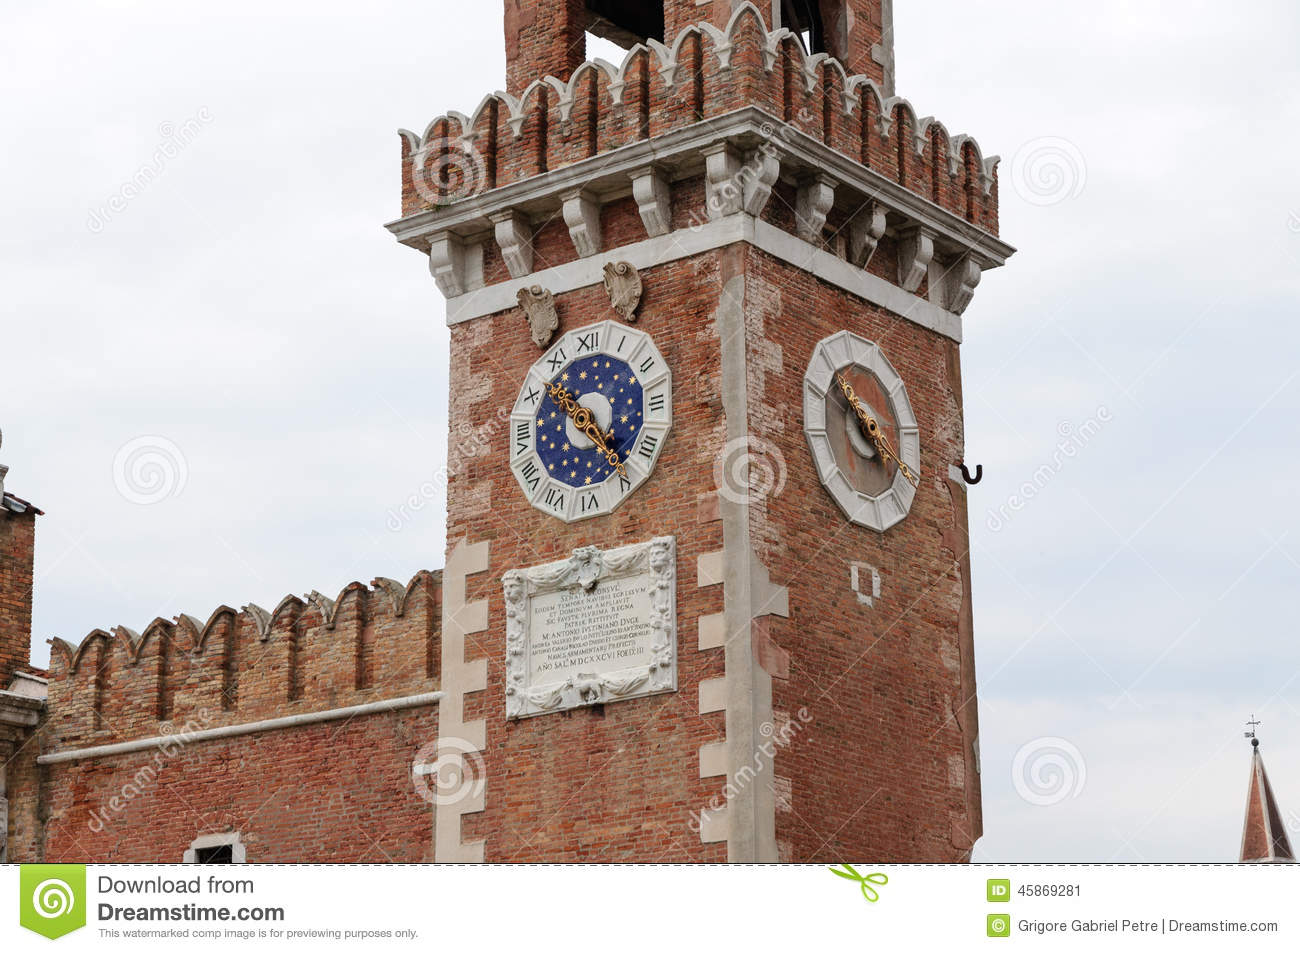 Arsenal Of Venice Clock Tower Stock Photo.